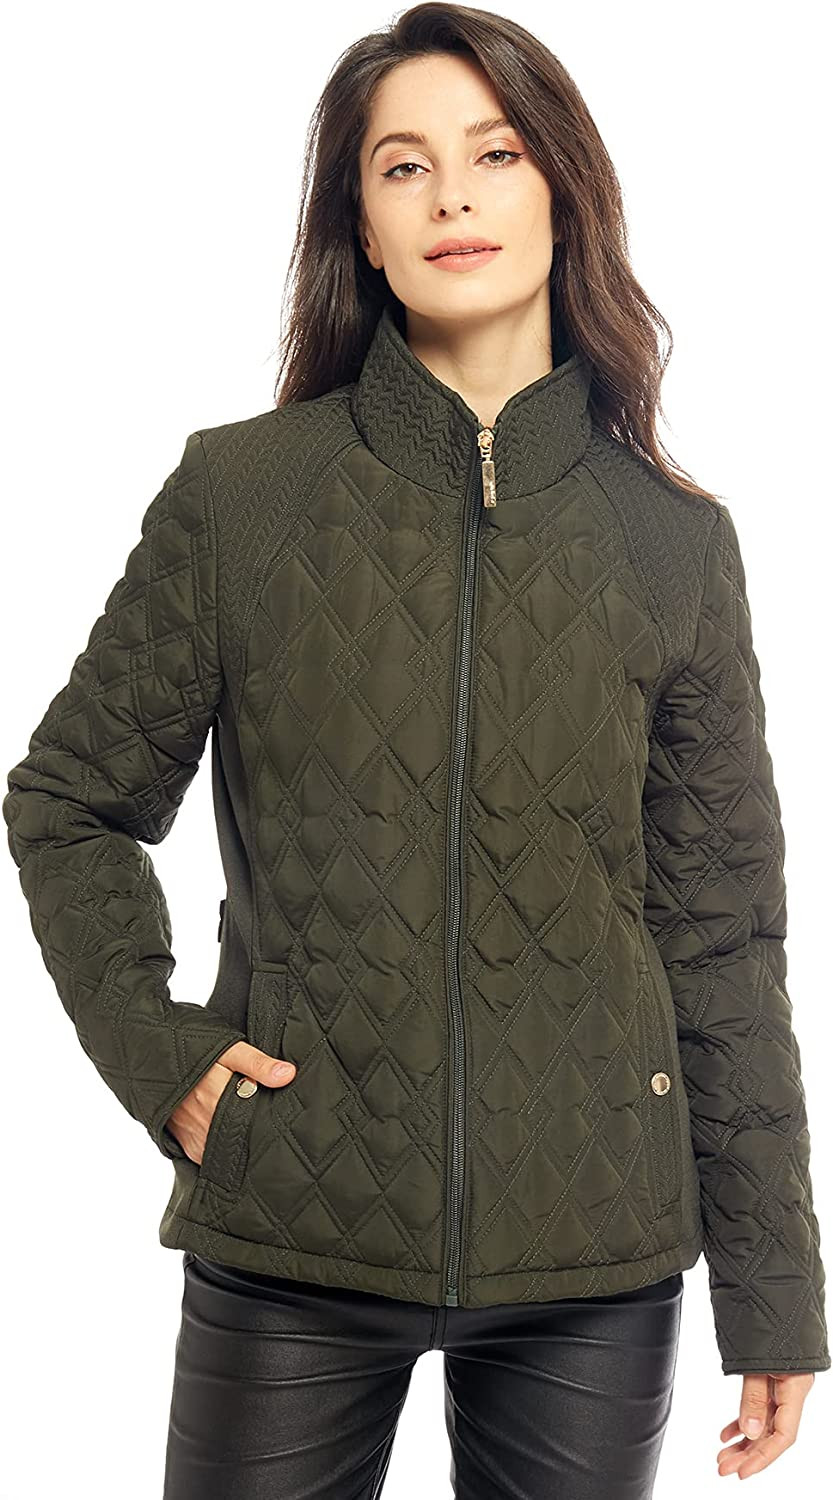 Womens Diamond Max National uniform free shipping 78% OFF Quilted Jacket Lightweight Padding Pock Coat with